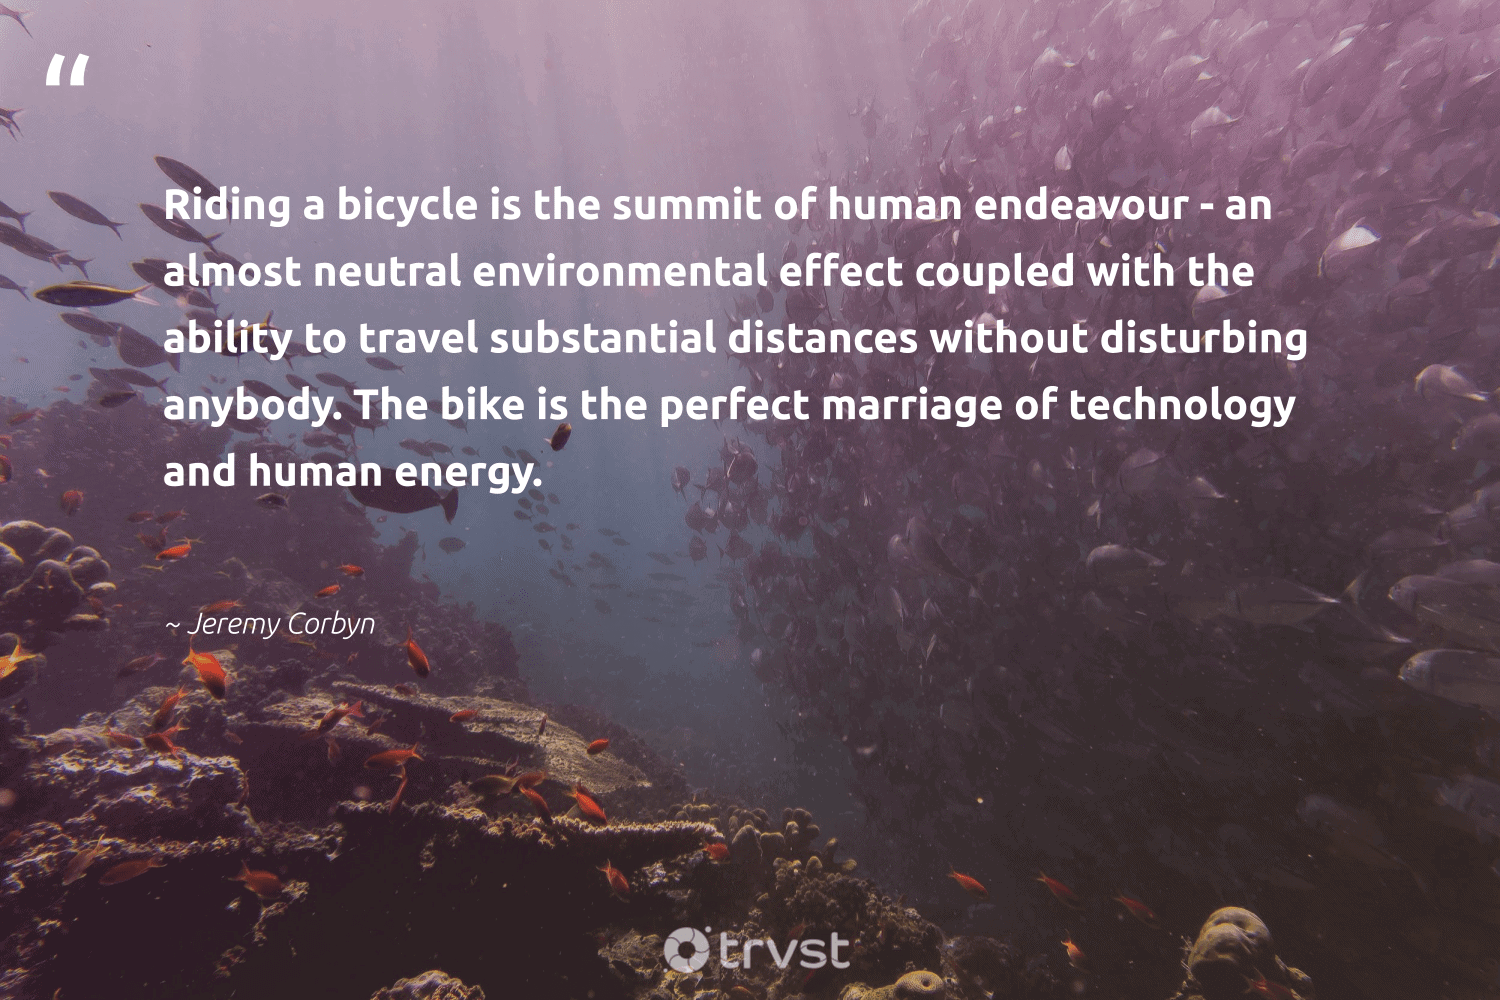 """""""Riding a bicycle is the summit of human endeavour - an almost neutral environmental effect coupled with the ability to travel substantial distances without disturbing anybody. The bike is the perfect marriage of technology and human energy.""""  - Jeremy Corbyn #trvst #quotes #environmental #energy #travel #underwater #sustainability #tiger #beinspired #marinelife #ecofriendly #flowers"""